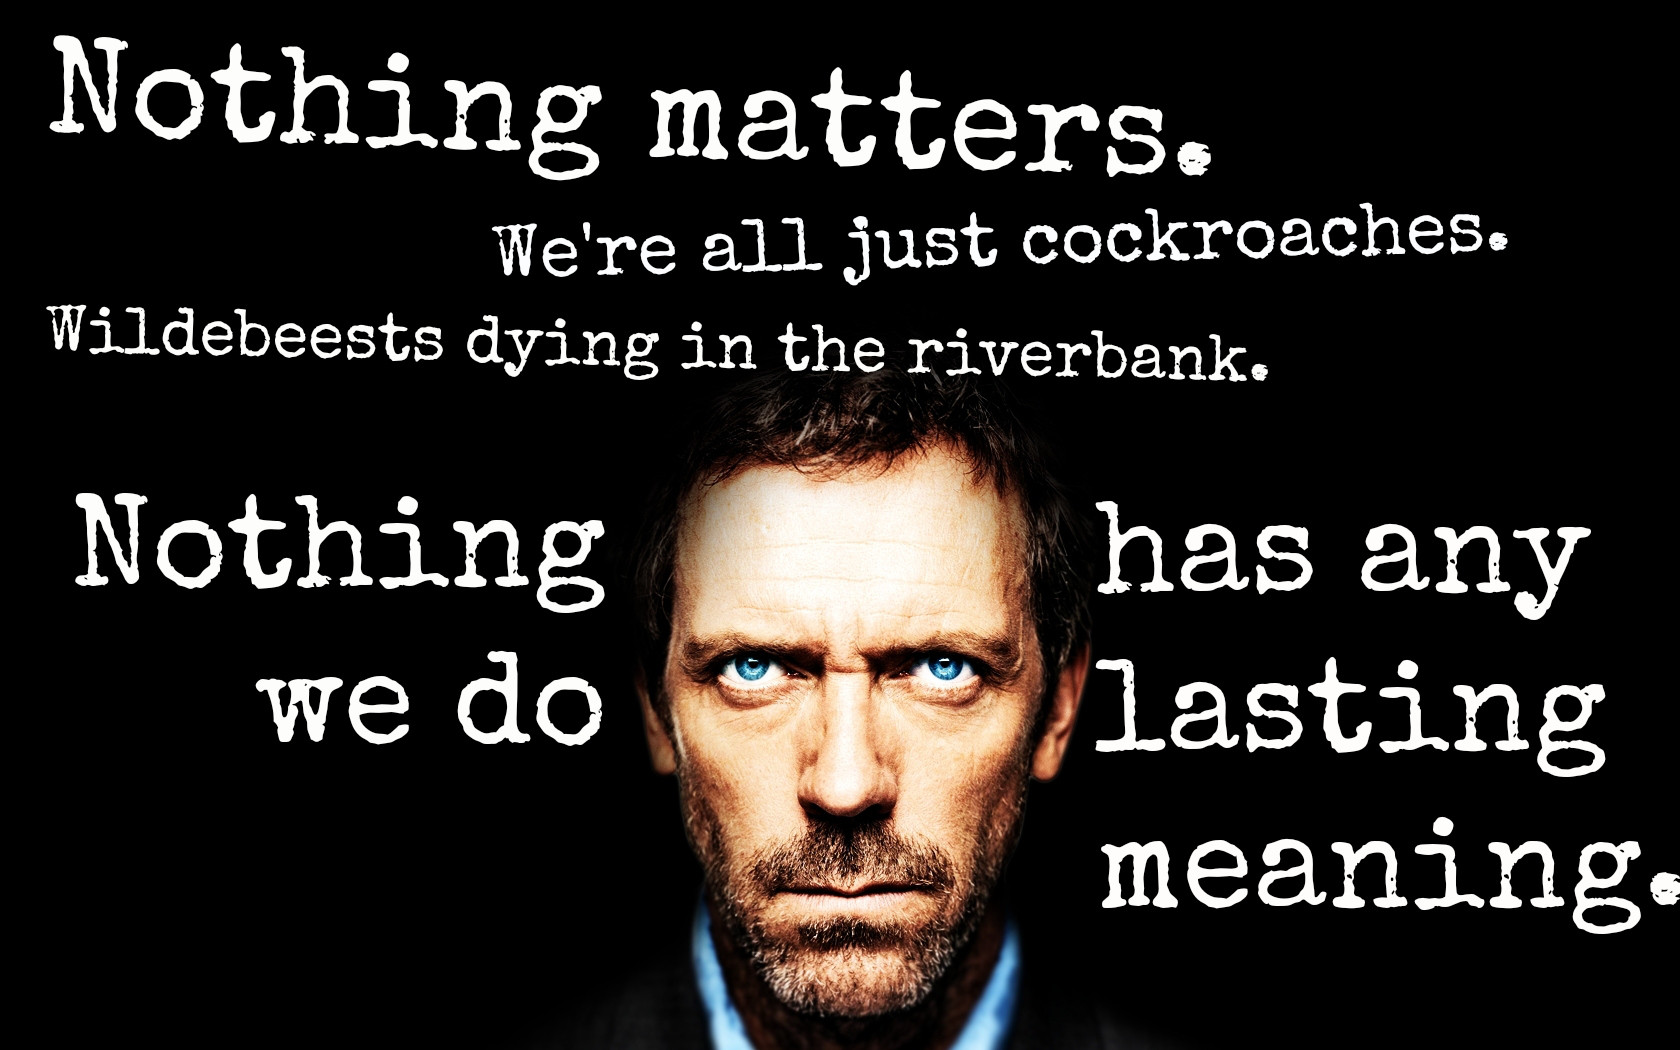 Dr House Funny Quotes Quotesgram